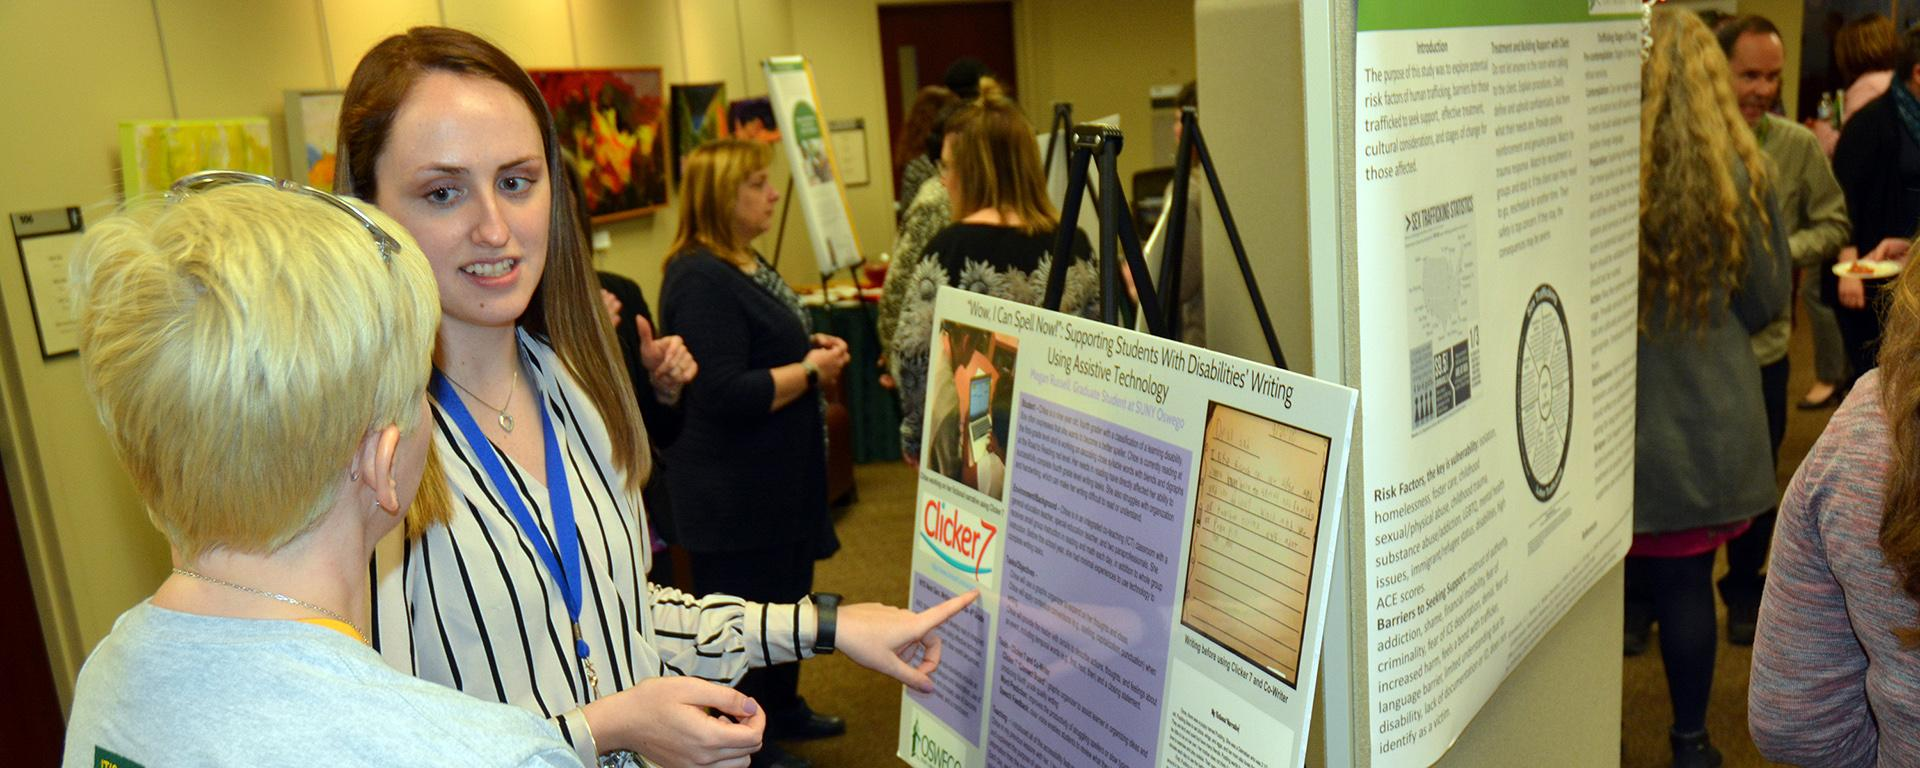 Megan Russell speaks about her research supporting students' reading abilities